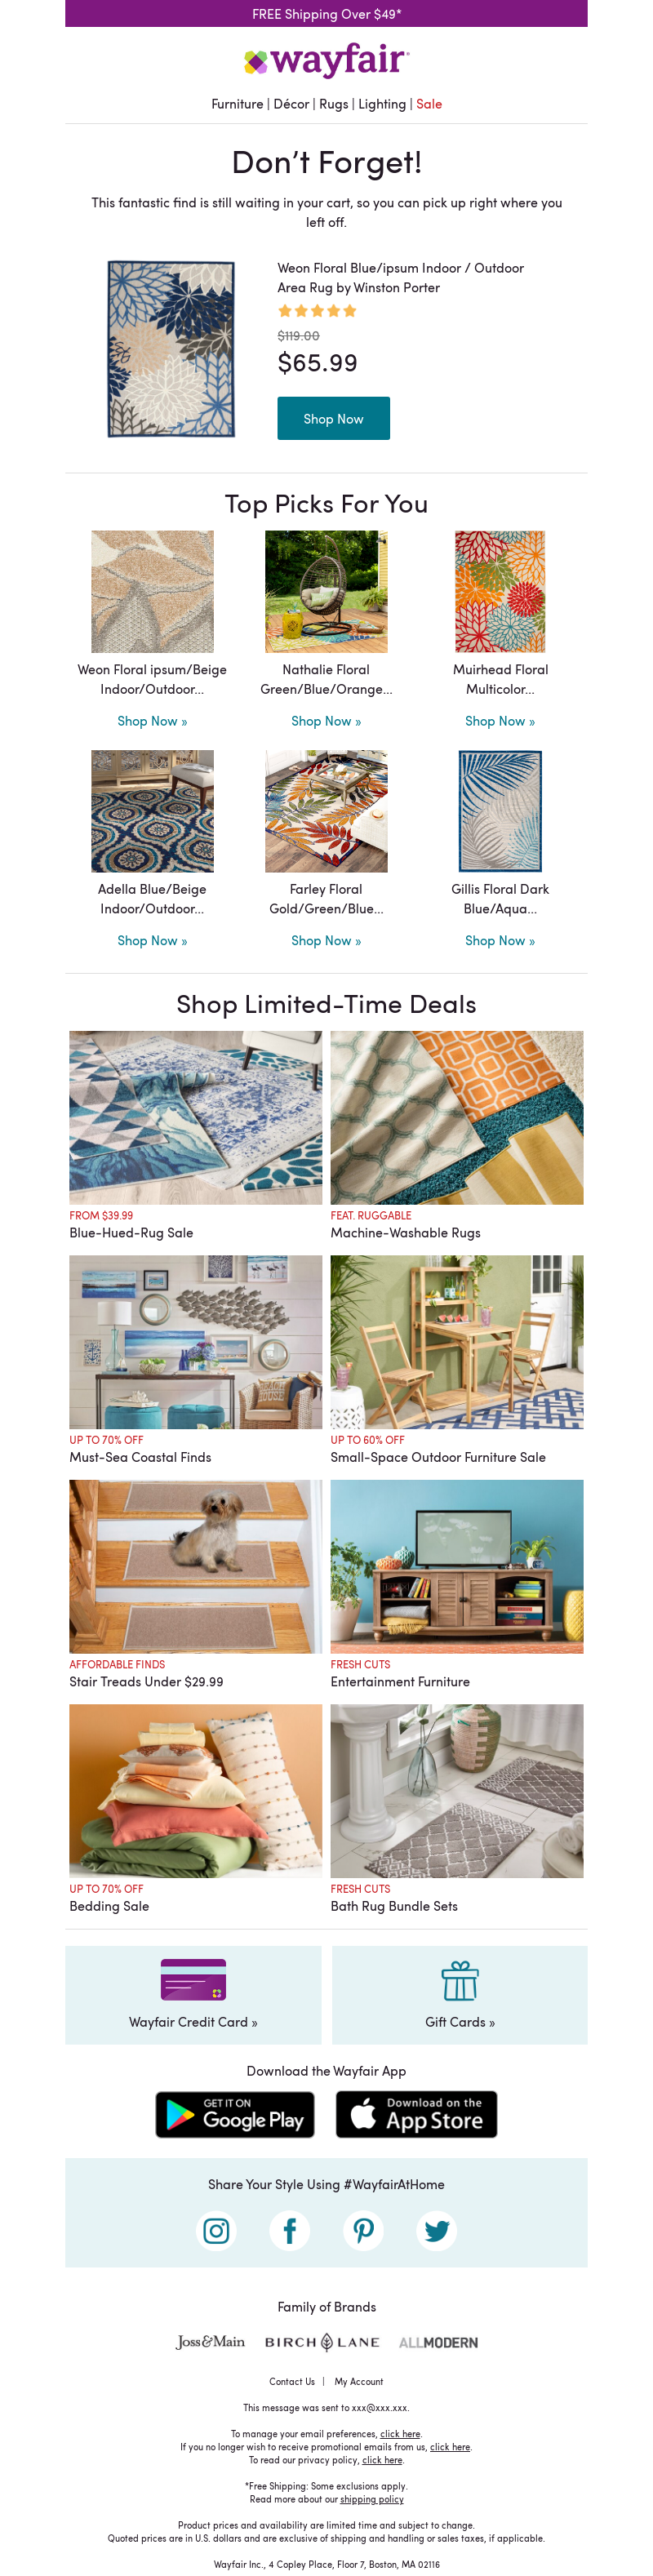 FREE Shipping Over $49* Wayfair Furniture | Décor | Rugs | Lighting | Sale